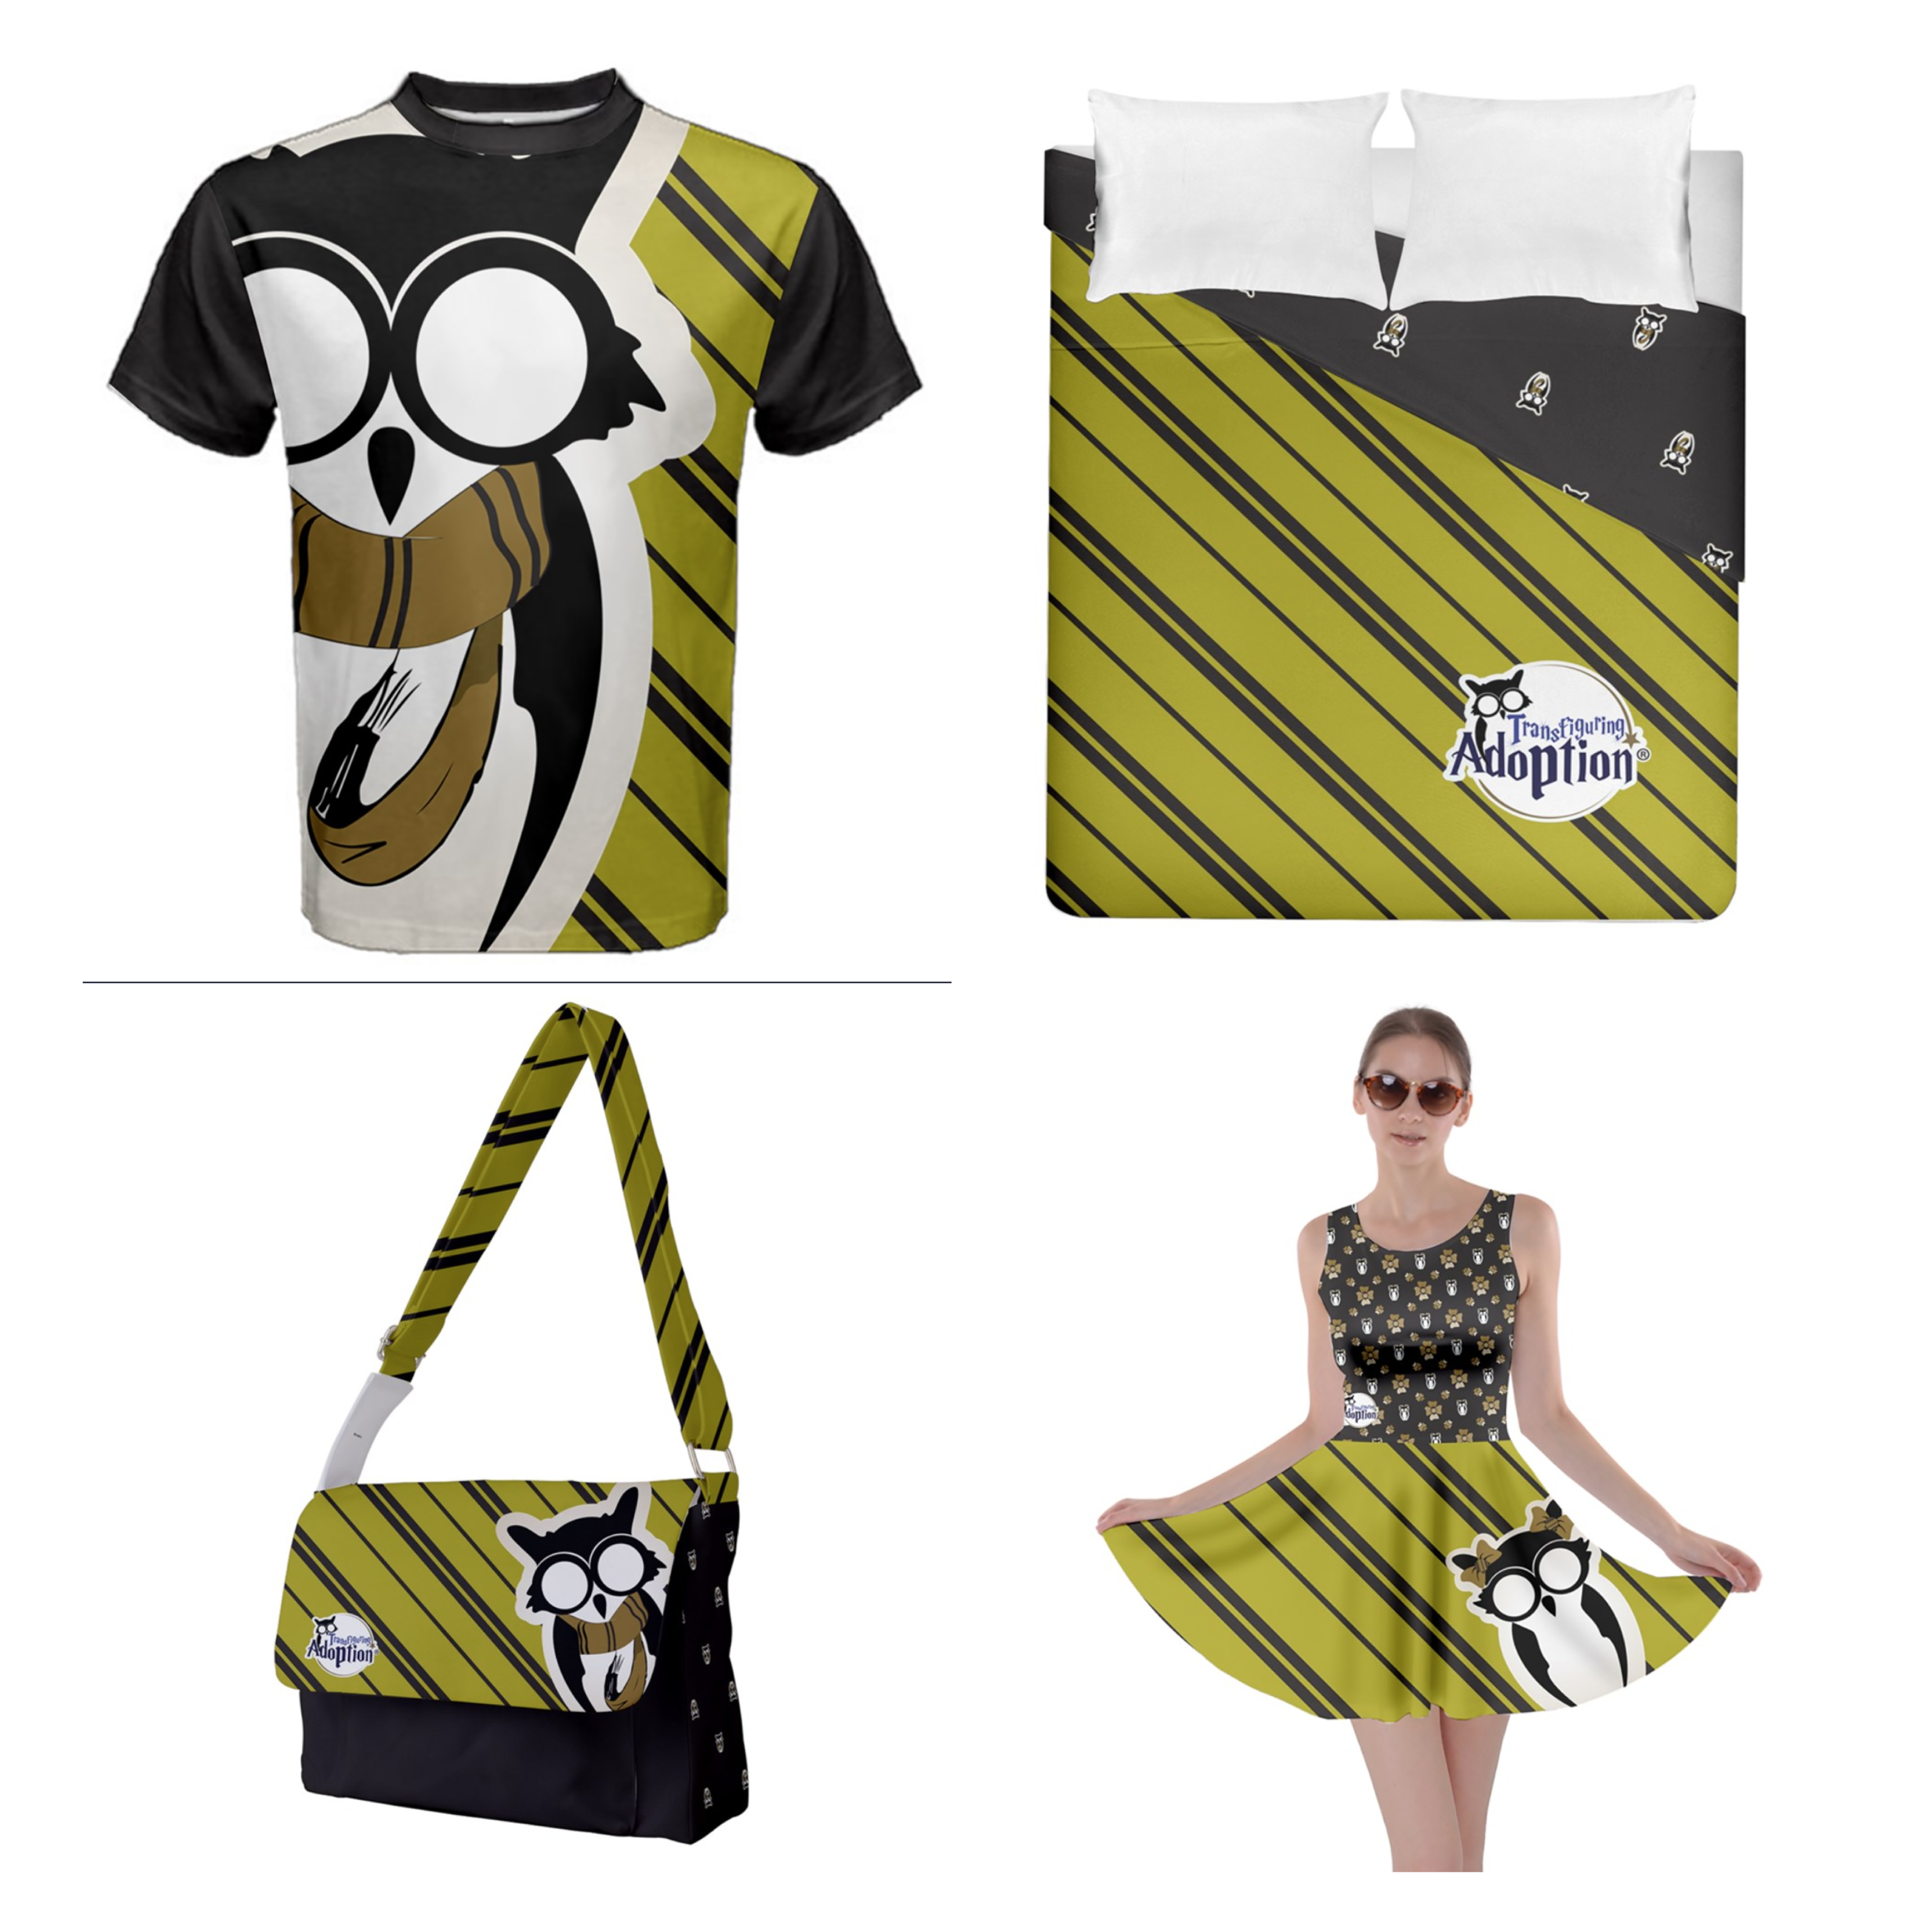 Yellow/Black Designs - Inspired by Hufflepuff